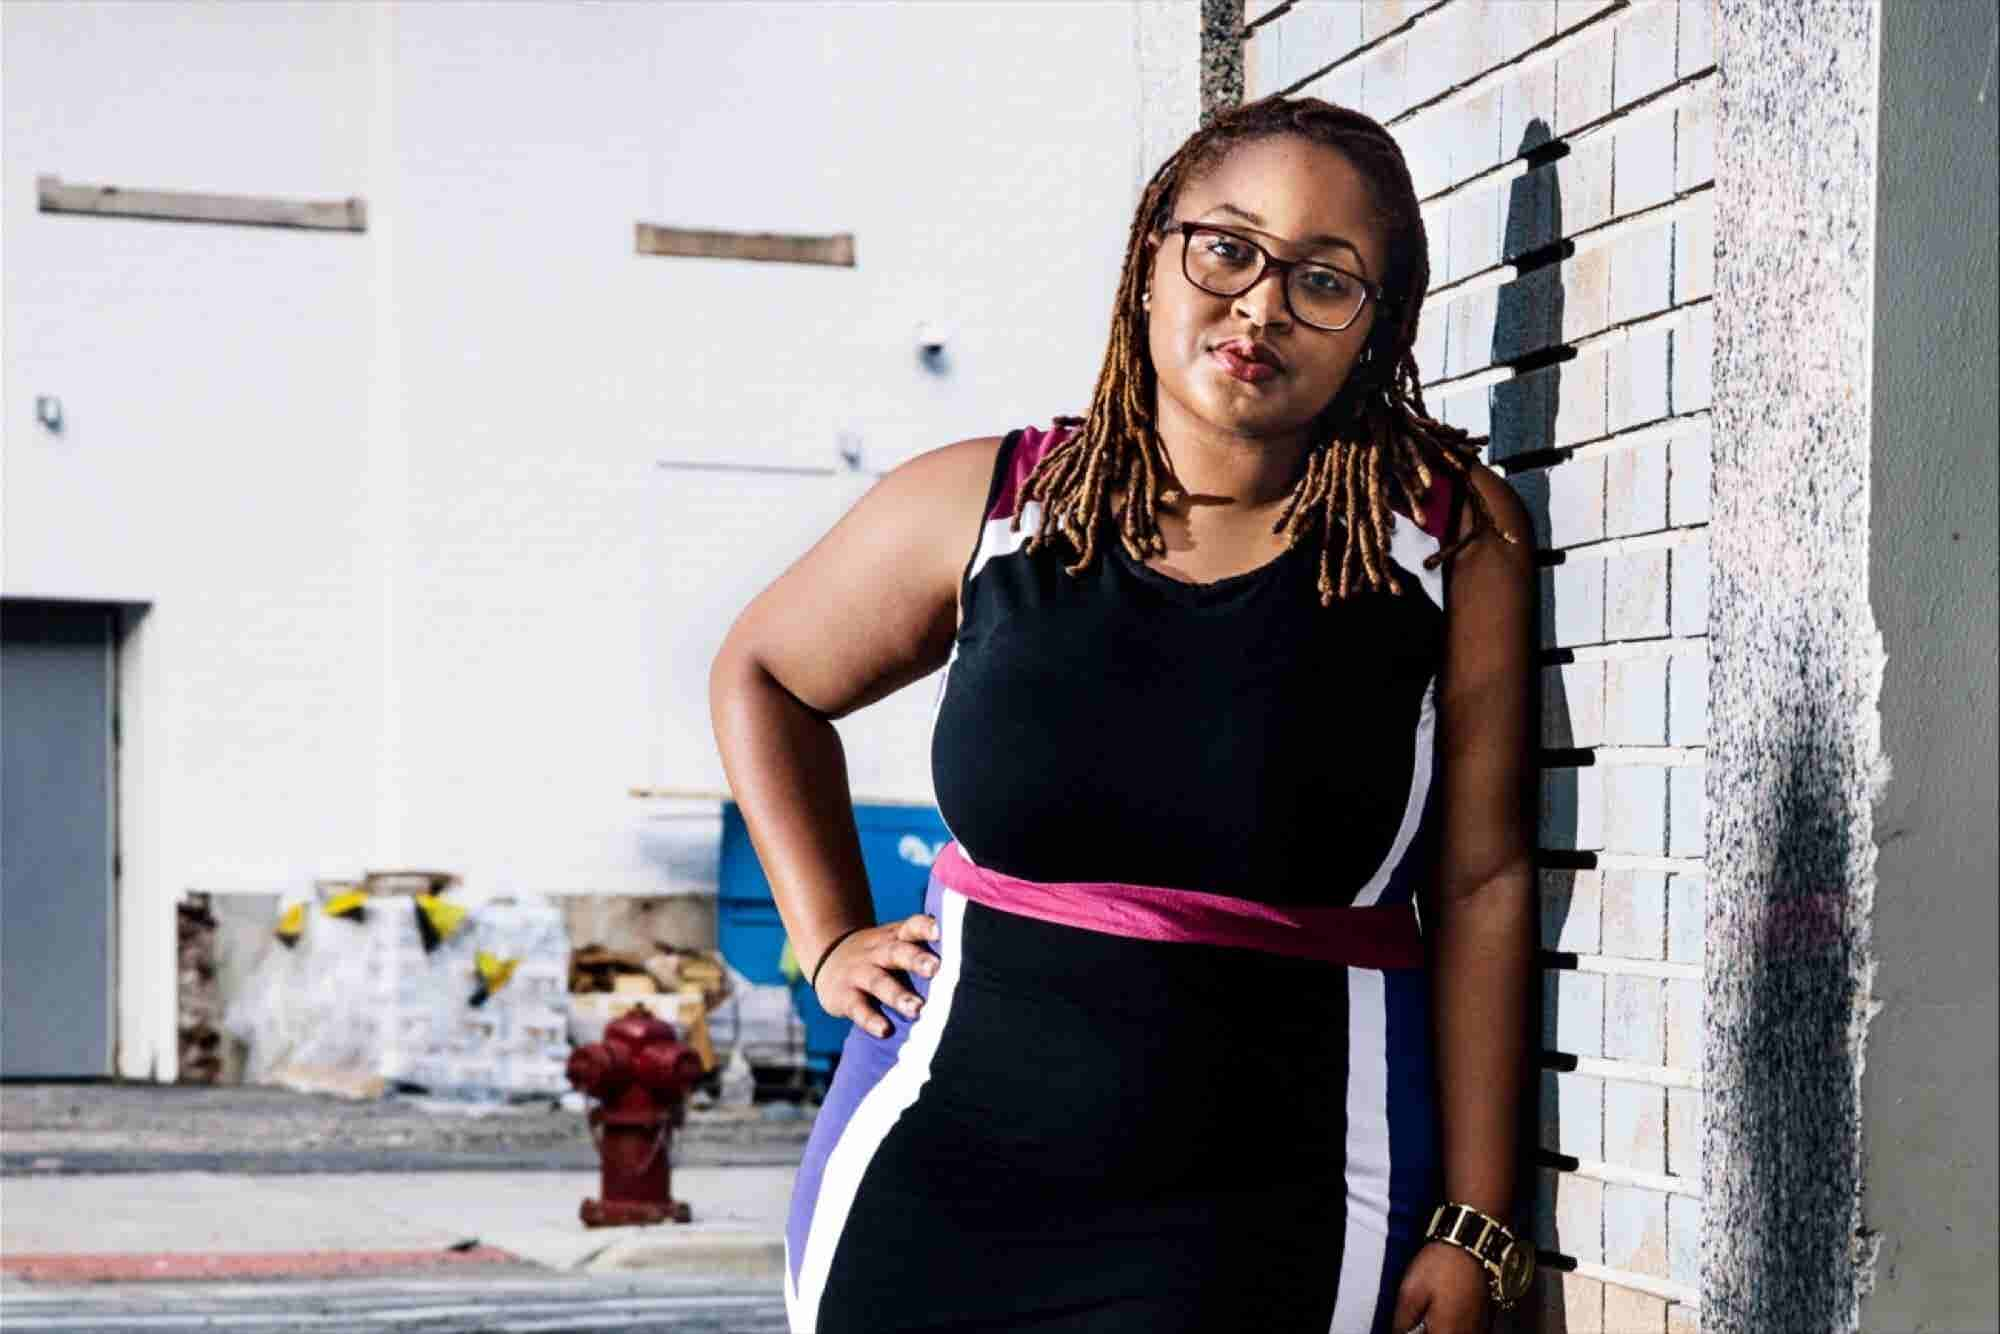 She Built an App Without Knowing How to Code -- and is Now a Millionaire